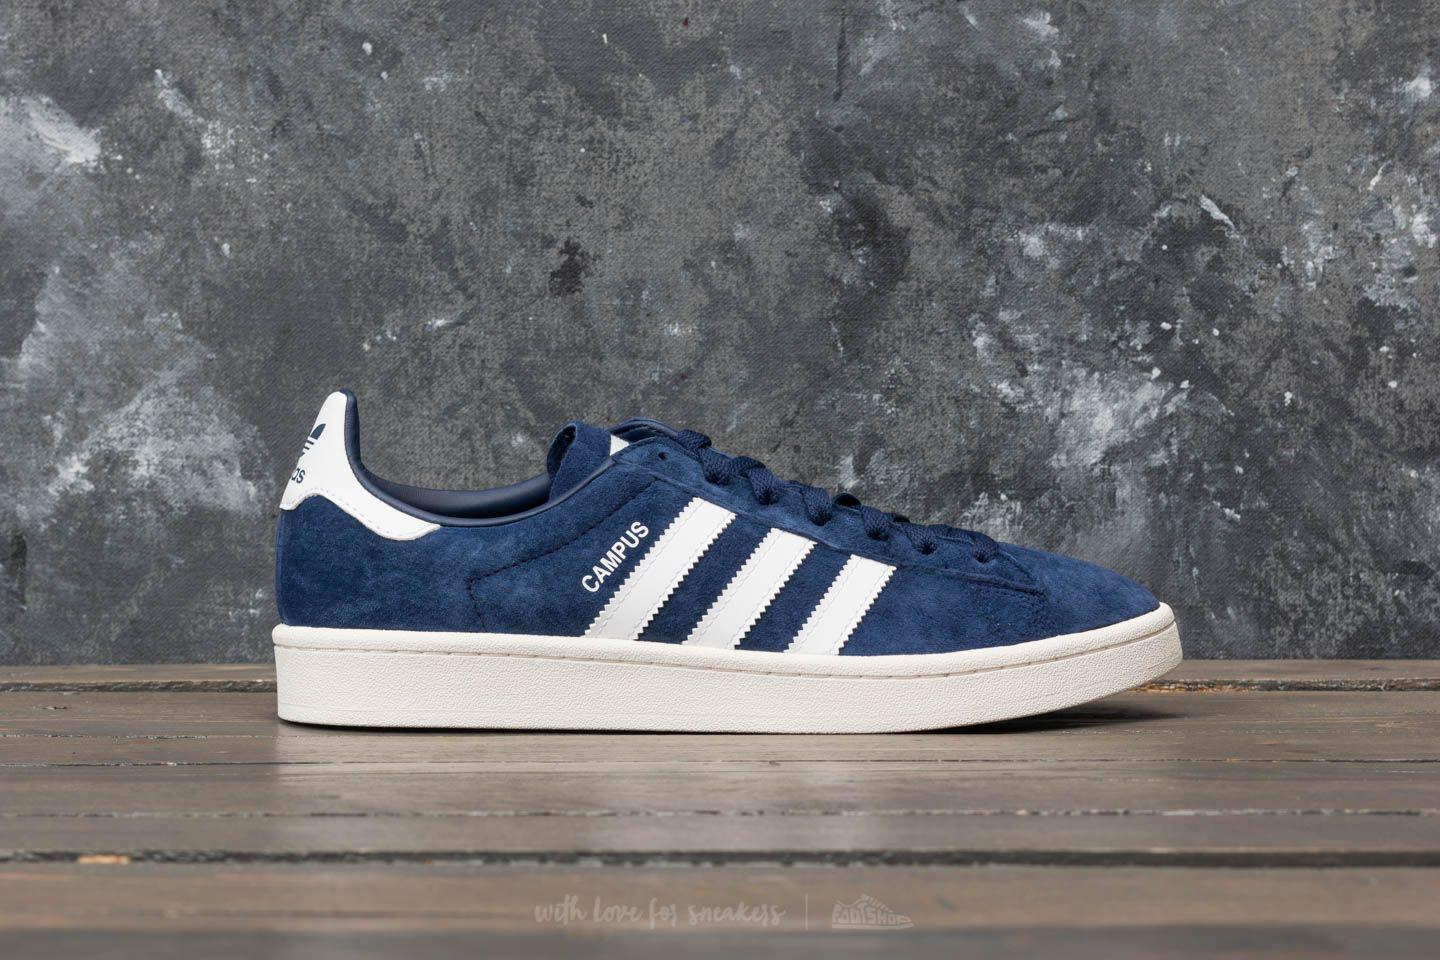 d9c2d9ecccb356 Lyst - adidas Originals Adidas Campus Dark Blue  Ftw White  Chalk ...